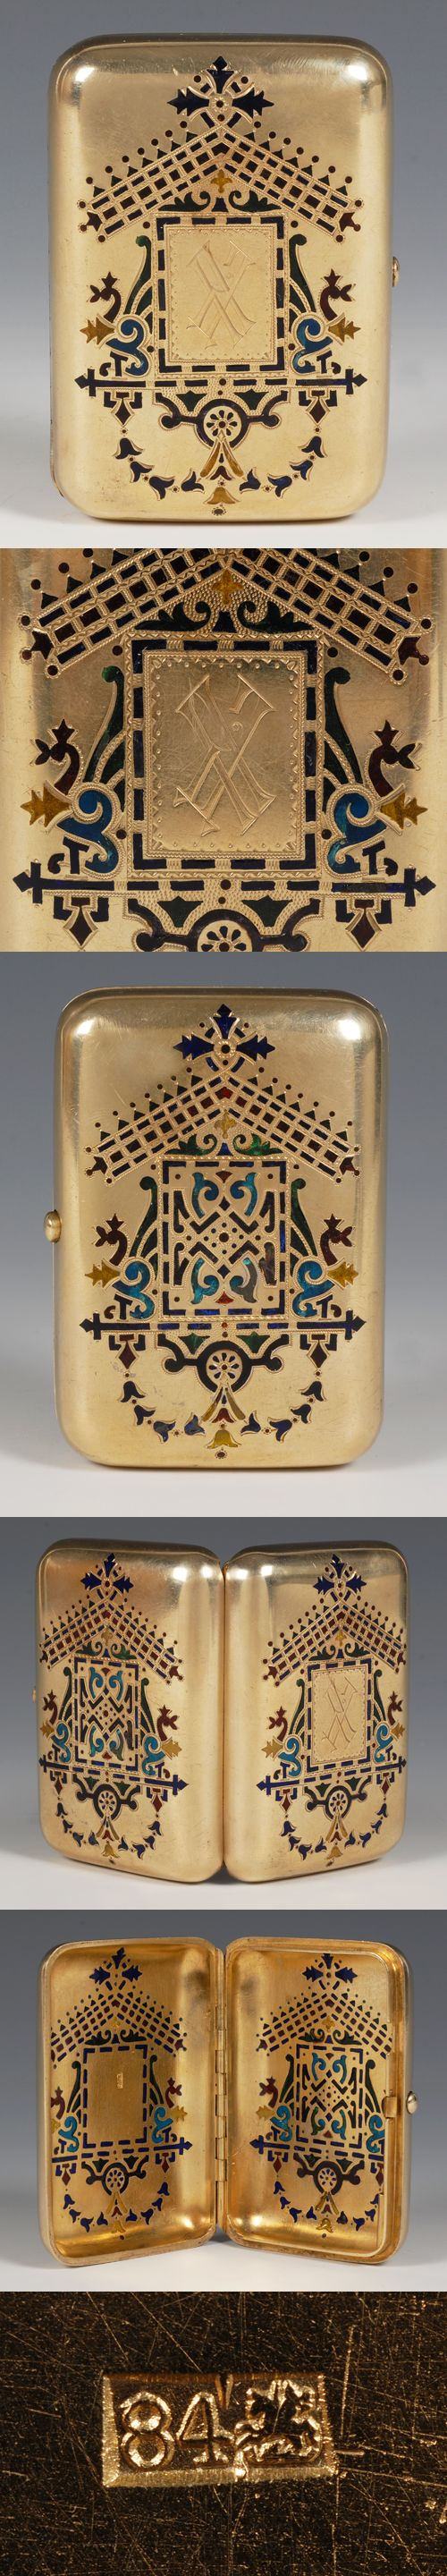 A Russian silver gilt and plique-a-jour enamel cigarette case, Ivan Khlebnikov, Moscow, circa 1896-1908. Of rectangular form with rounded corners, one side of the case decorated with multi-color translucent plique-a-jour enamel floral and foliate motifs, the other side similarly decorated featuring an engraved monogram